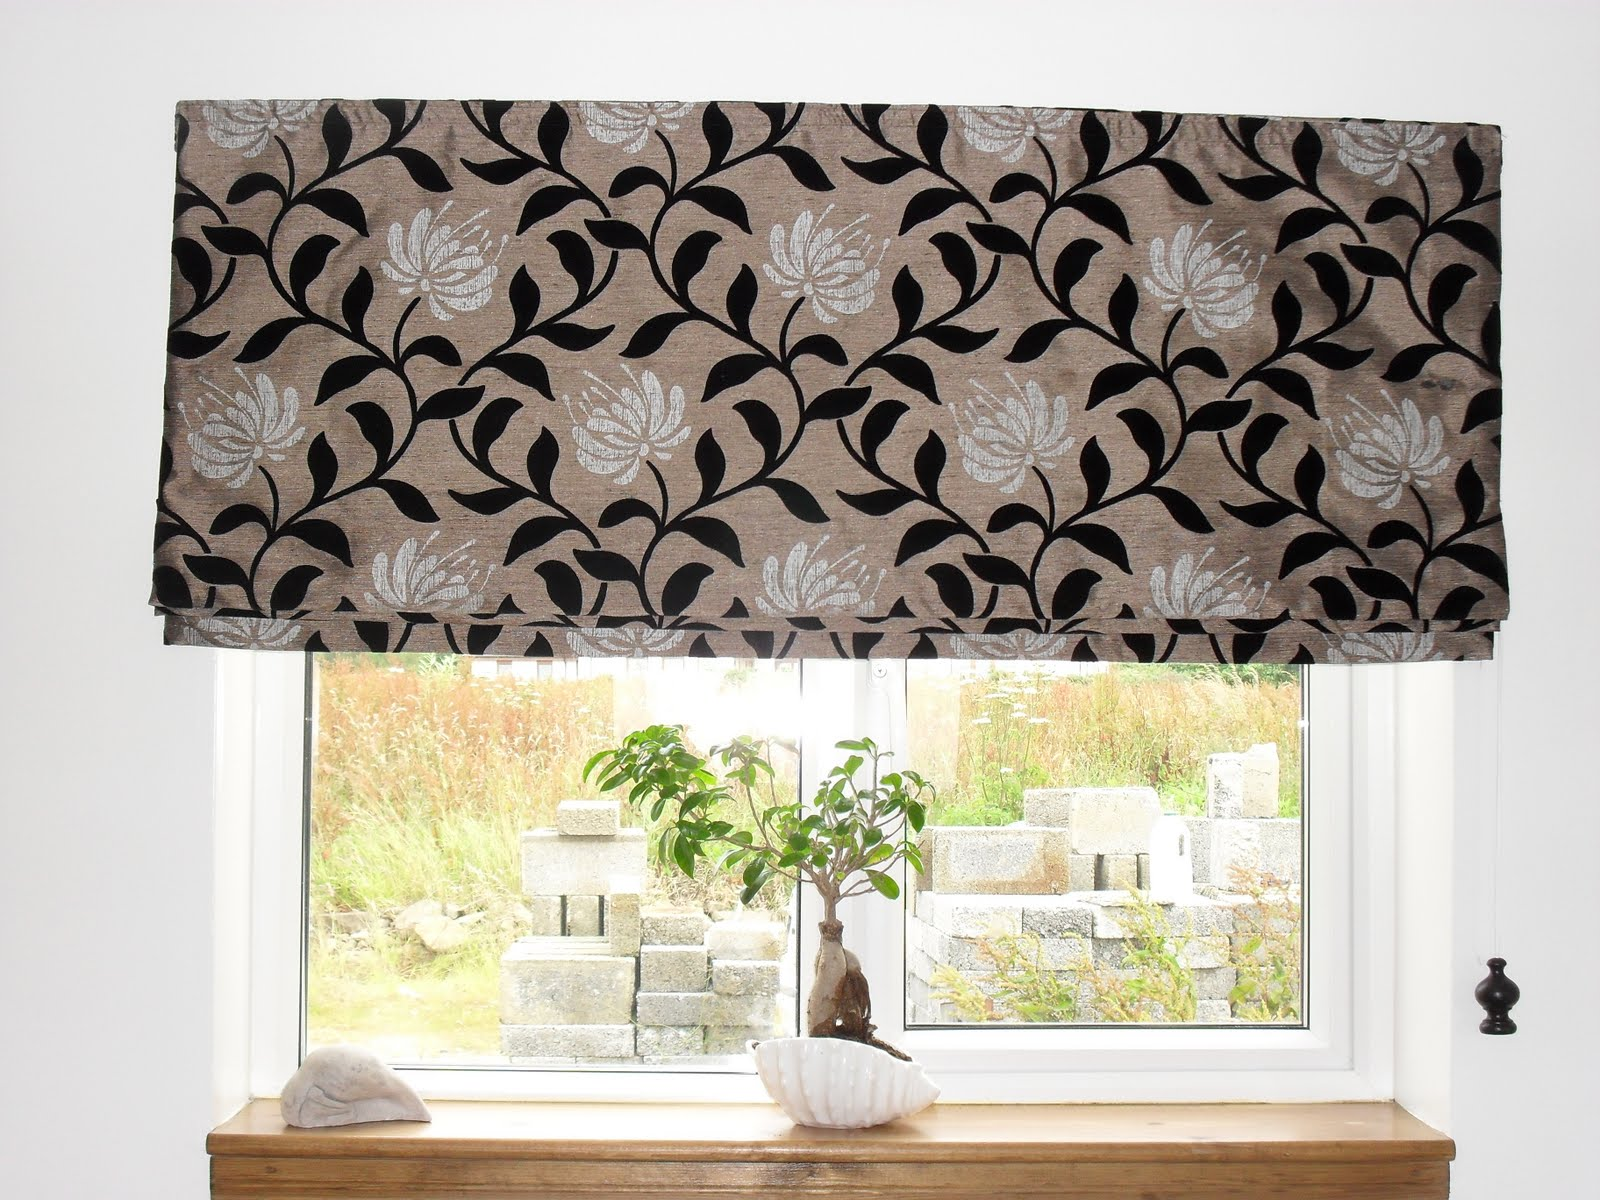 Roman Blinds For Kitchens Coach House Crafting On A Budget Easy To Make Roman Blinds